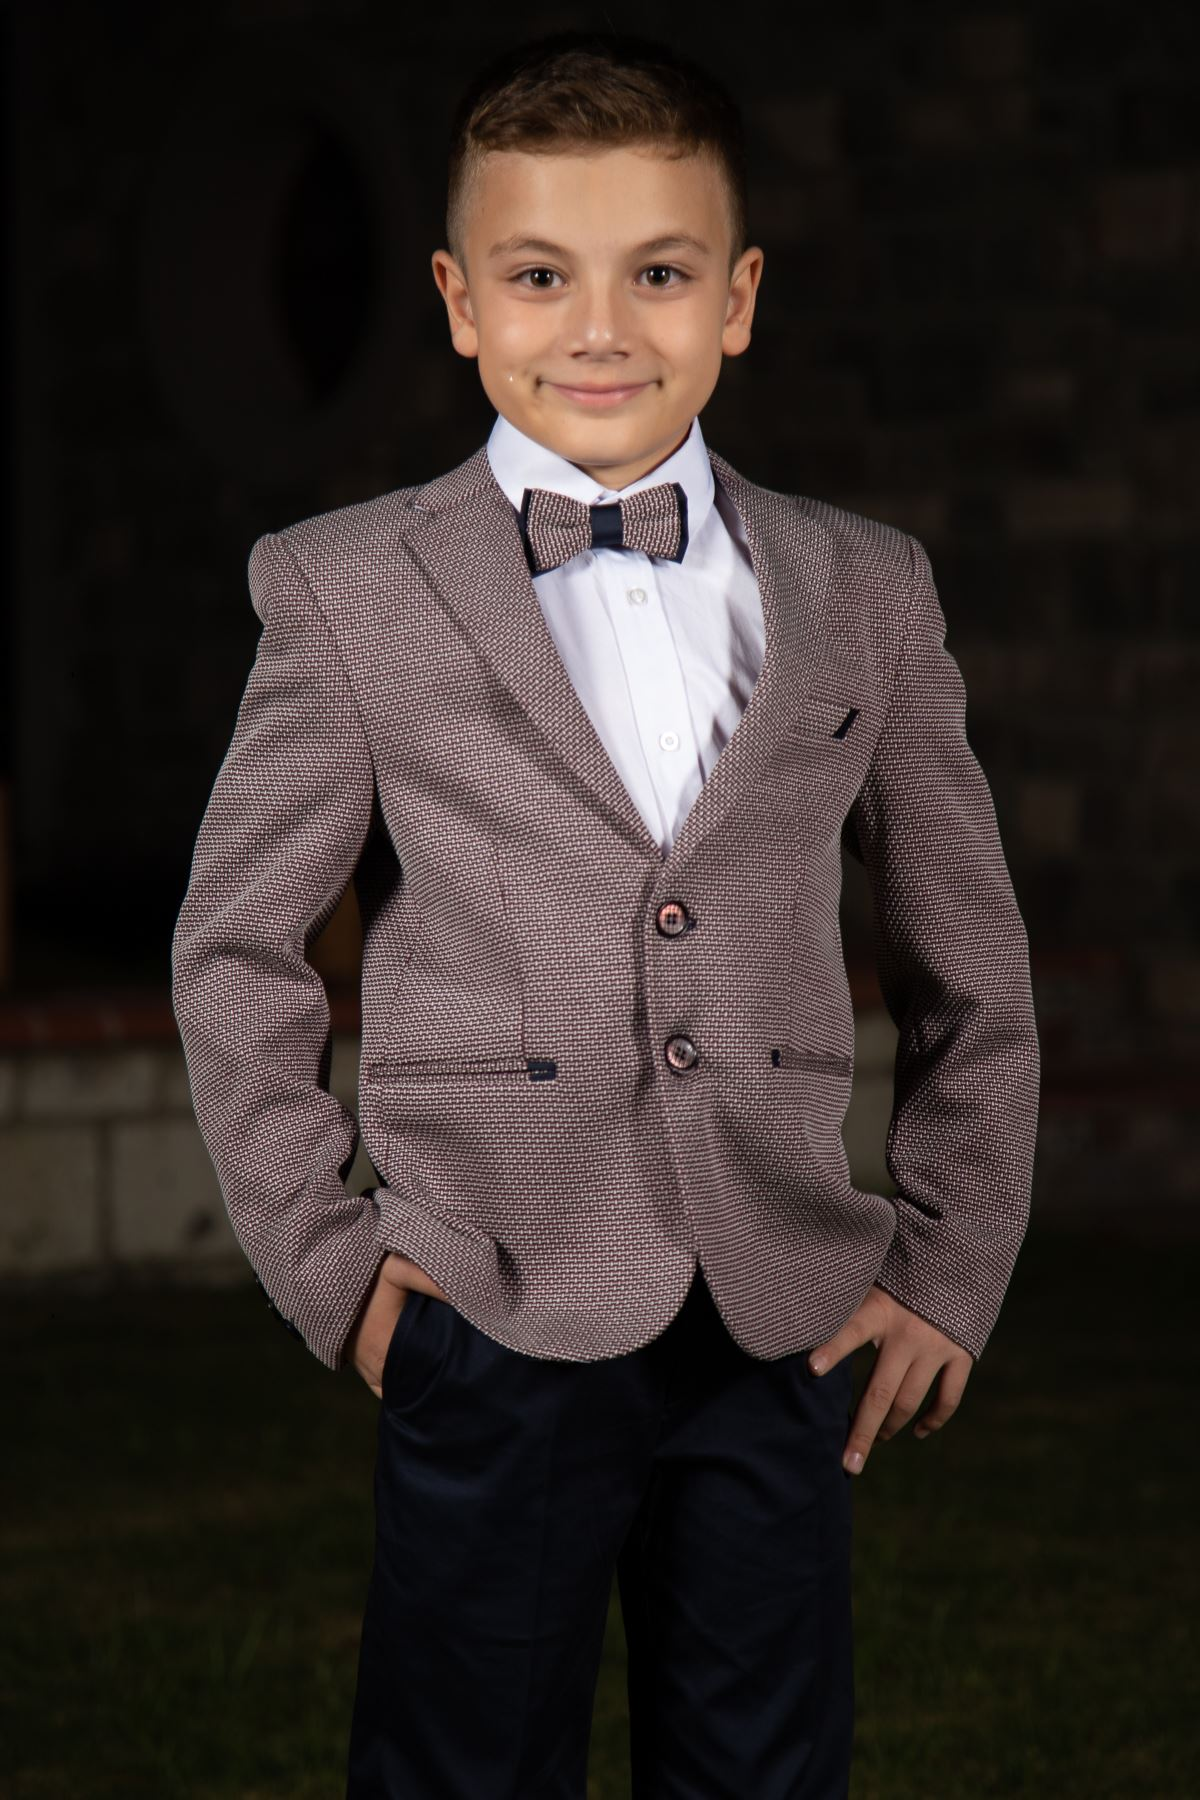 Knitted Fabric, Peto pocket and double fillet detail, mono collar, 3-piece set Boy Suit 138 Claret red